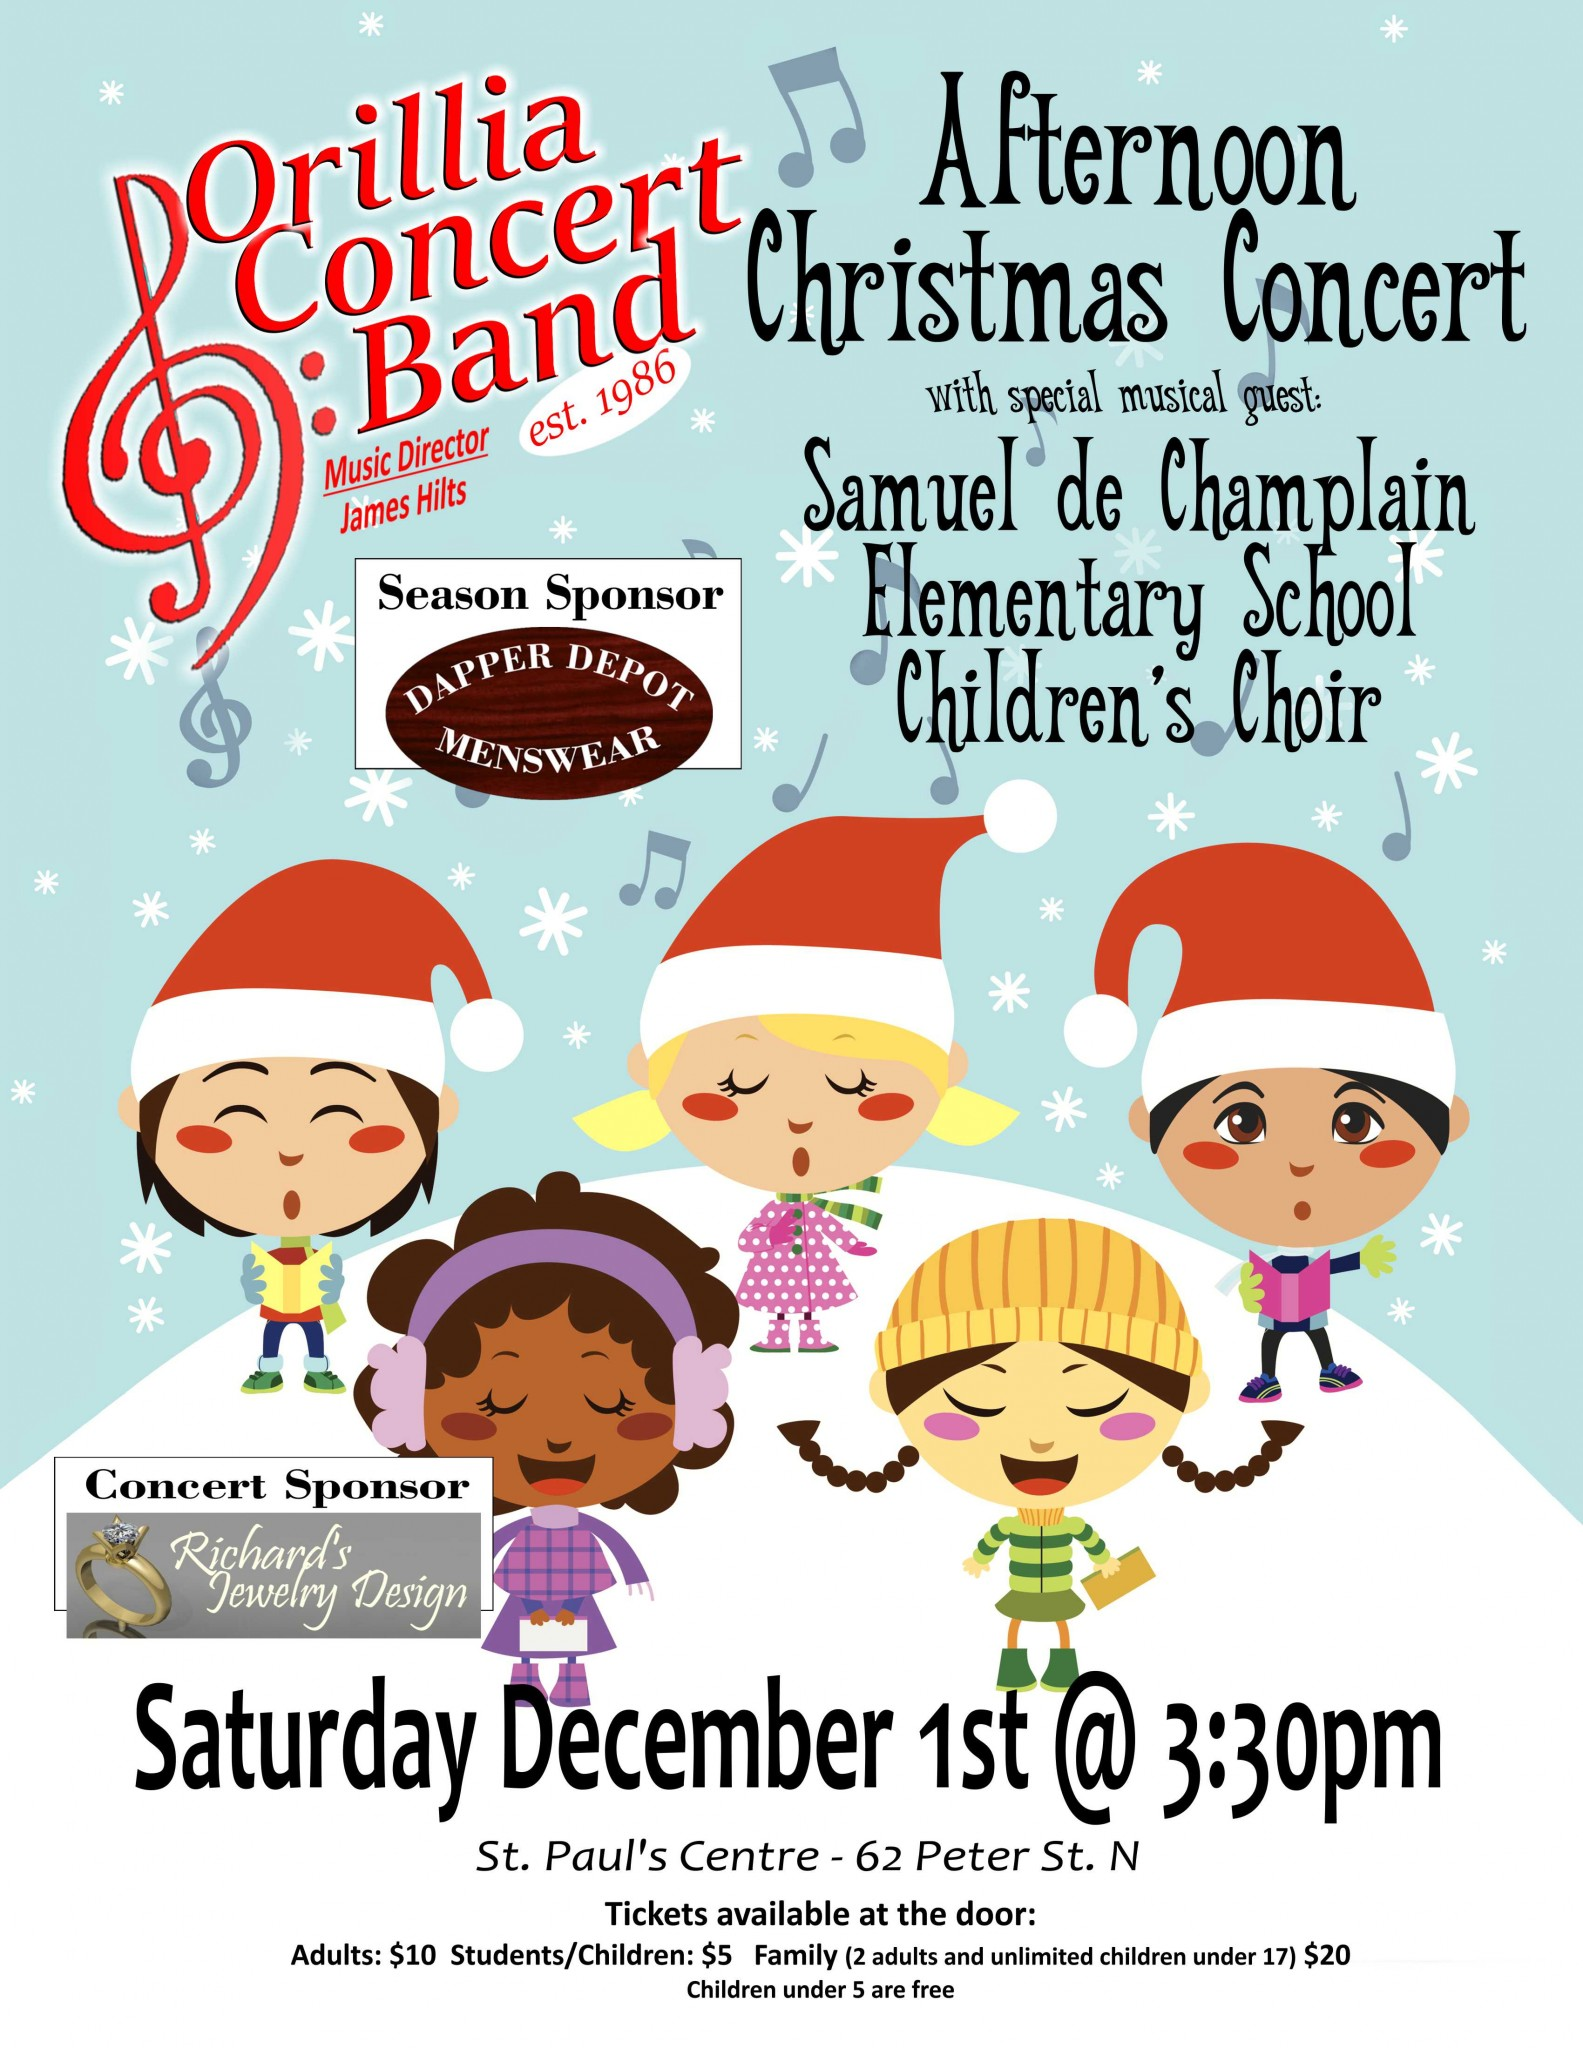 Afternoon Poster 1 - Orillia Concert Band Afternoon Christmas Concert